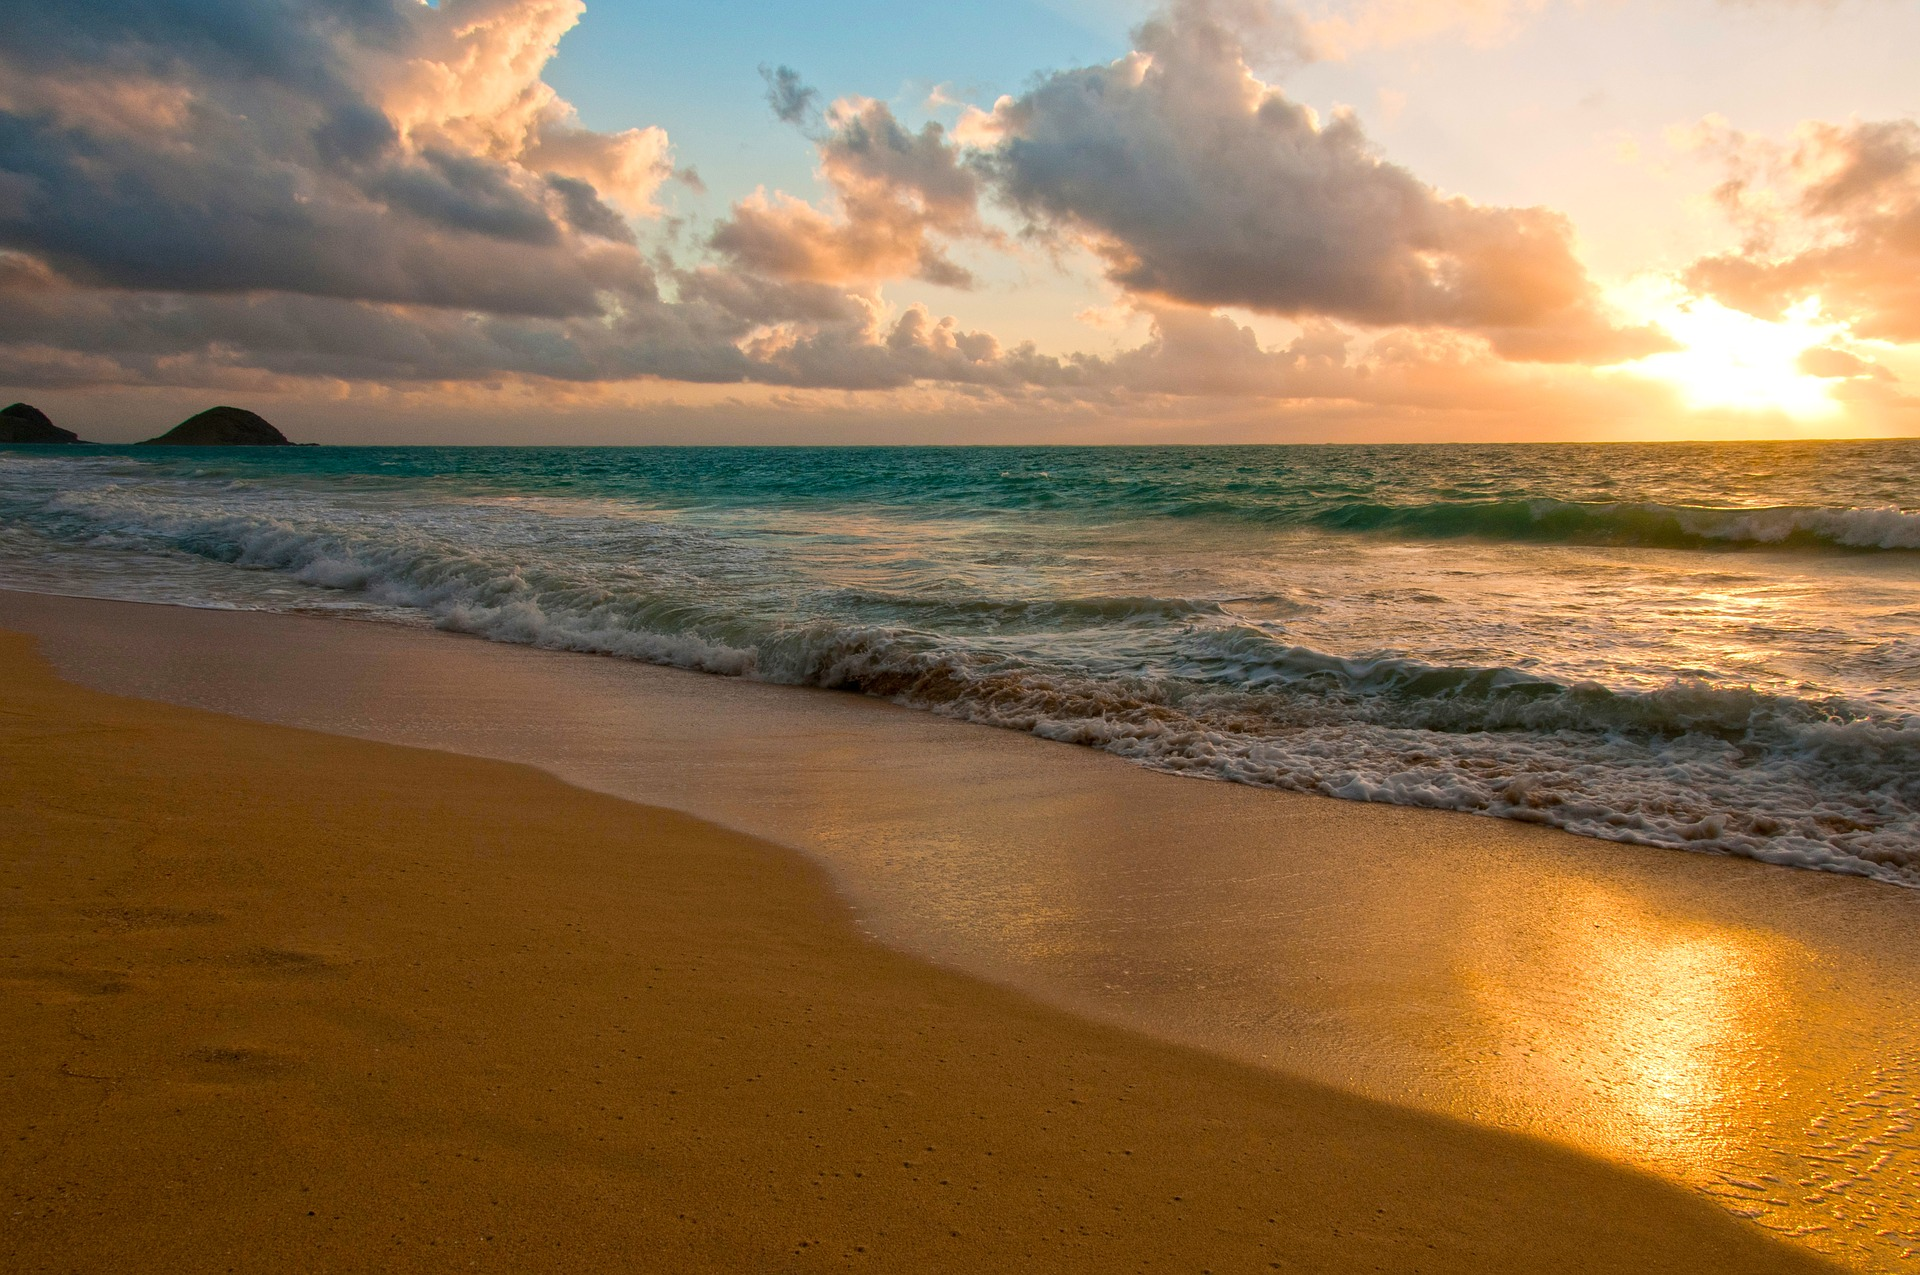 Free things to do in Oahu Hawaii - go to the beach.